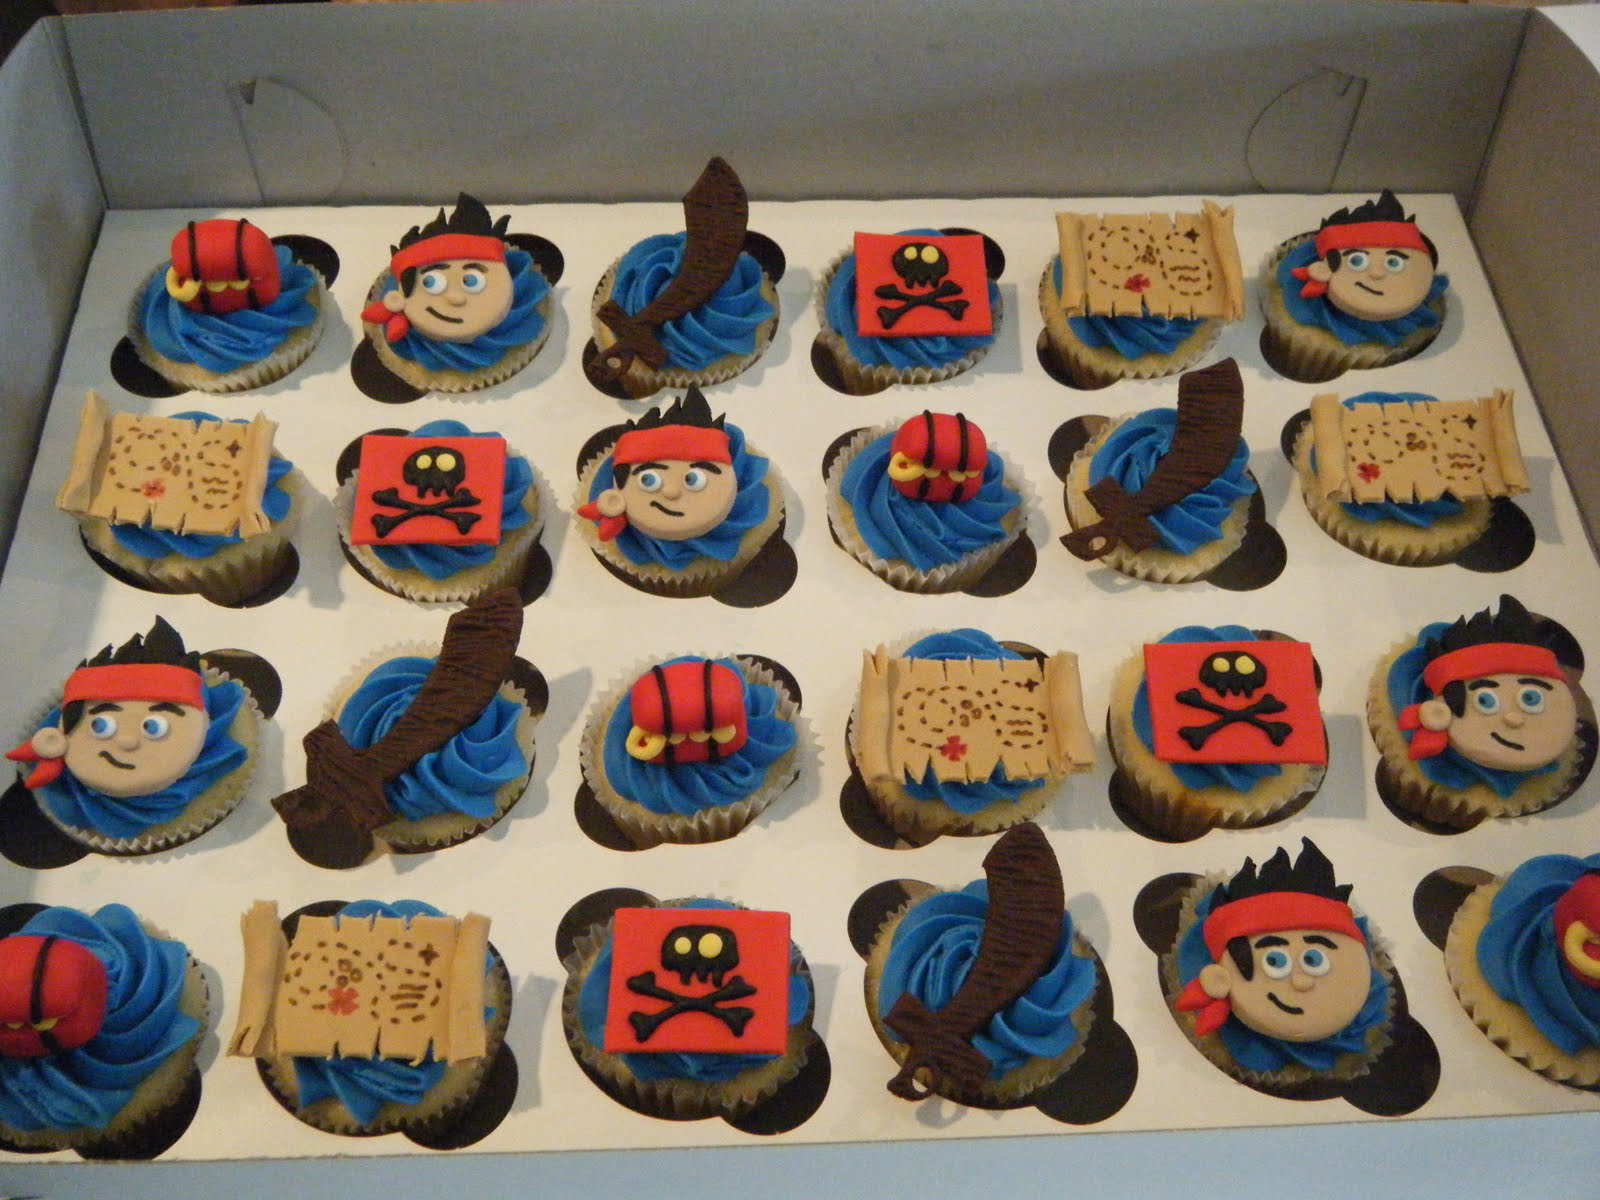 jake and the neverland pirates cupcakes - photo #7